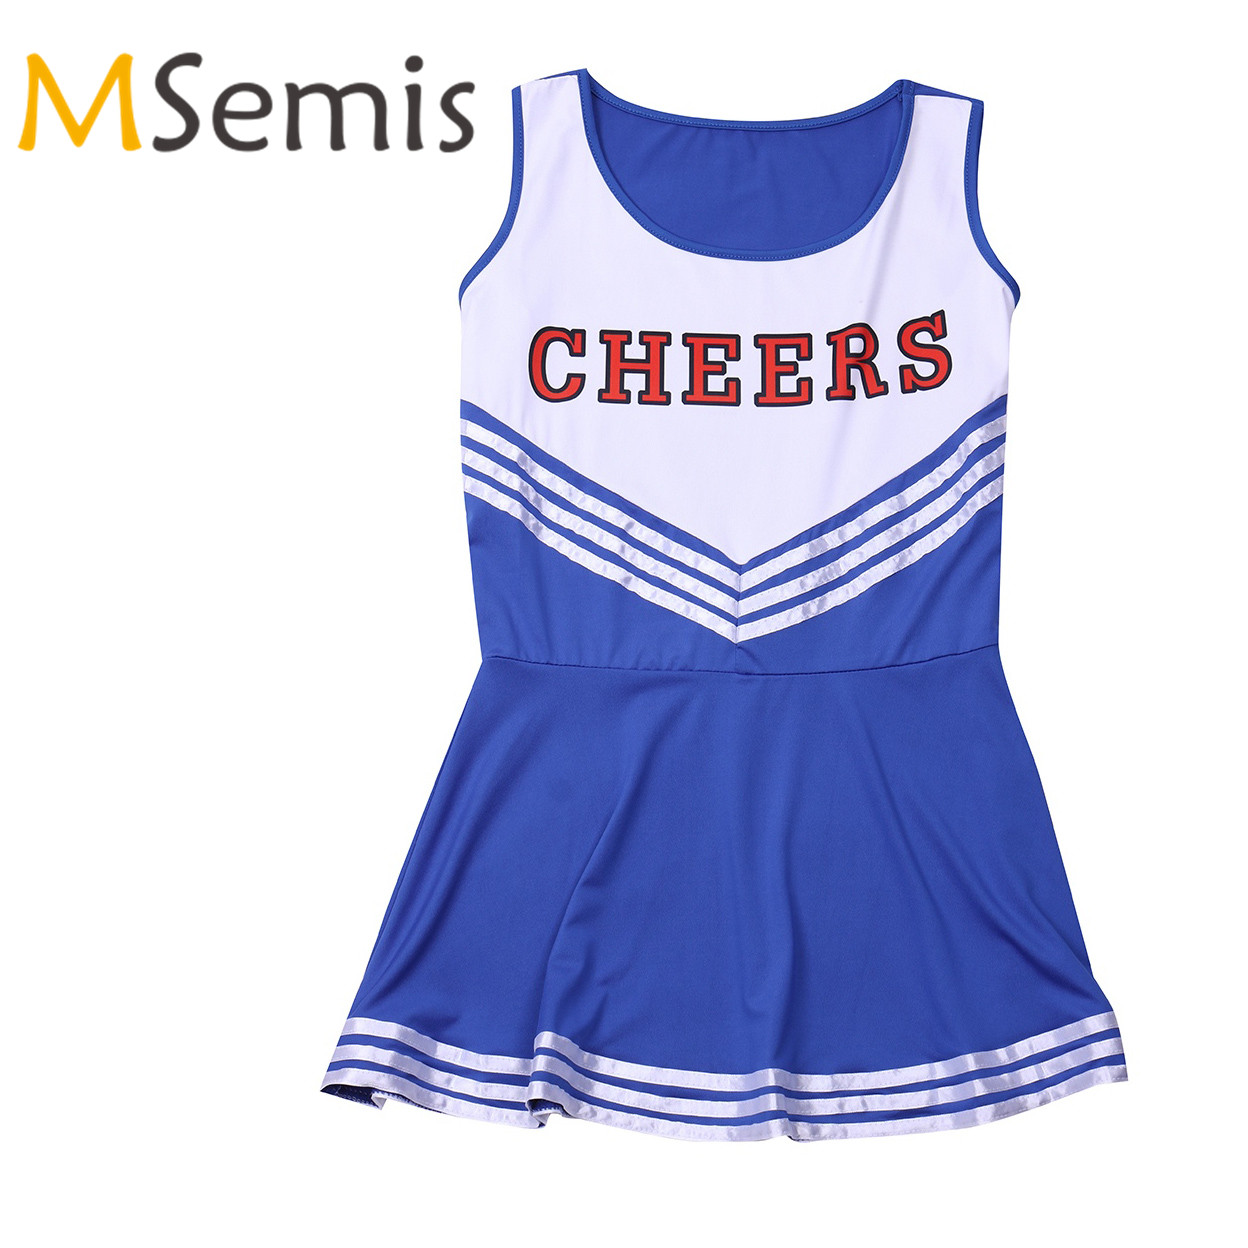 Women's Cheerleader Costume Uniform School Girls Musical Fancy Mini Dress Team Sports Cheerleadeing Uniform With CHEERS Letter